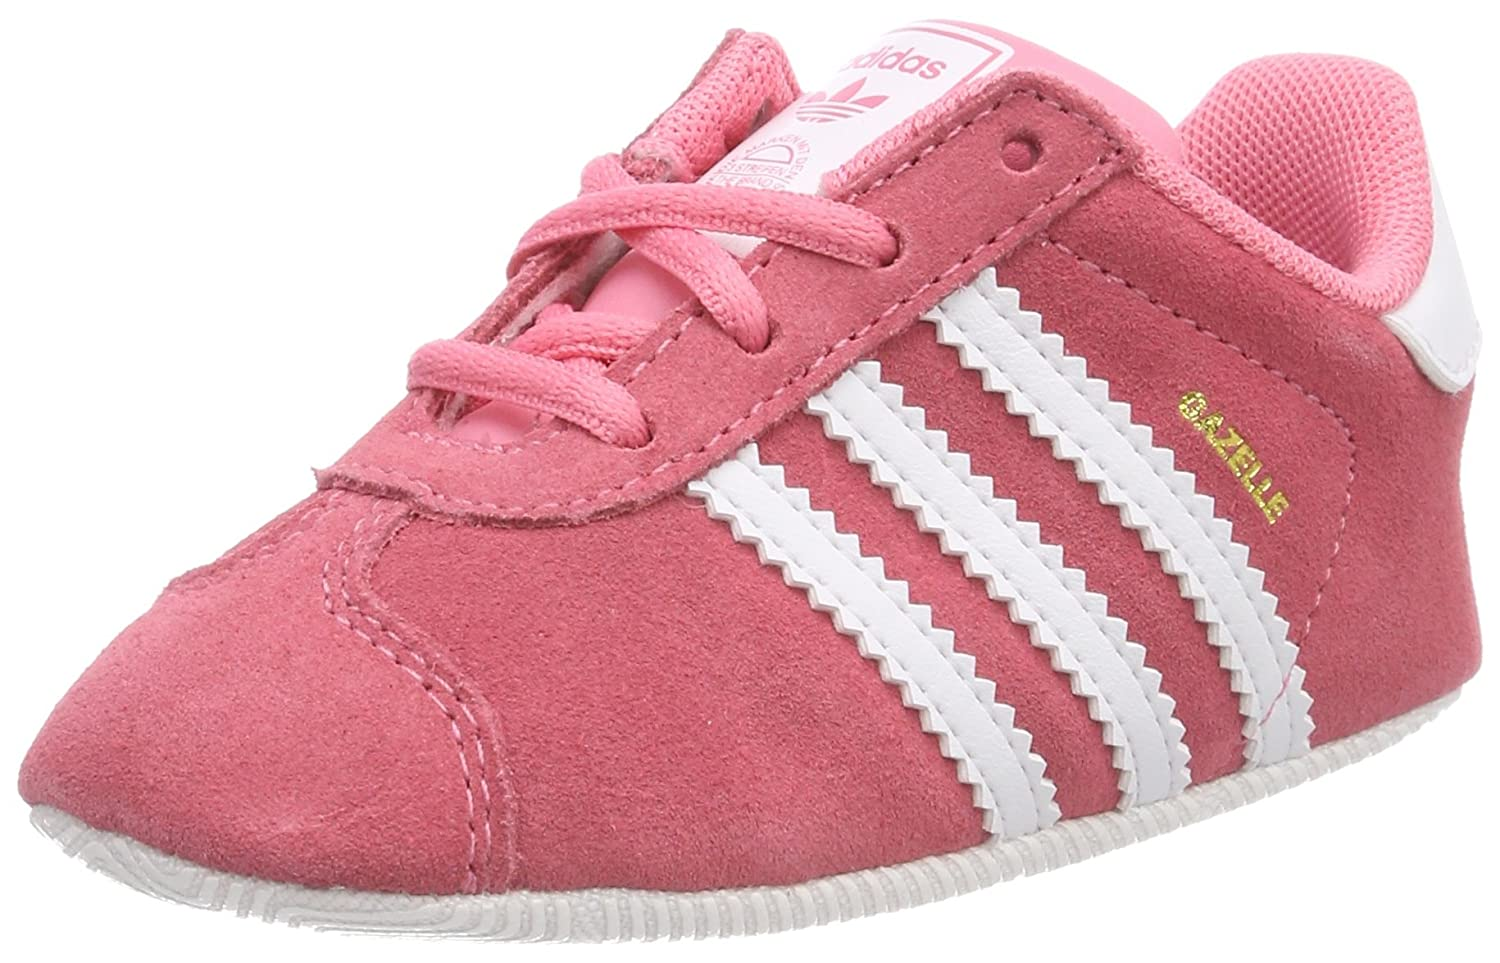 adidas Unisex Babies' Gazelle Low-Top Sneakers